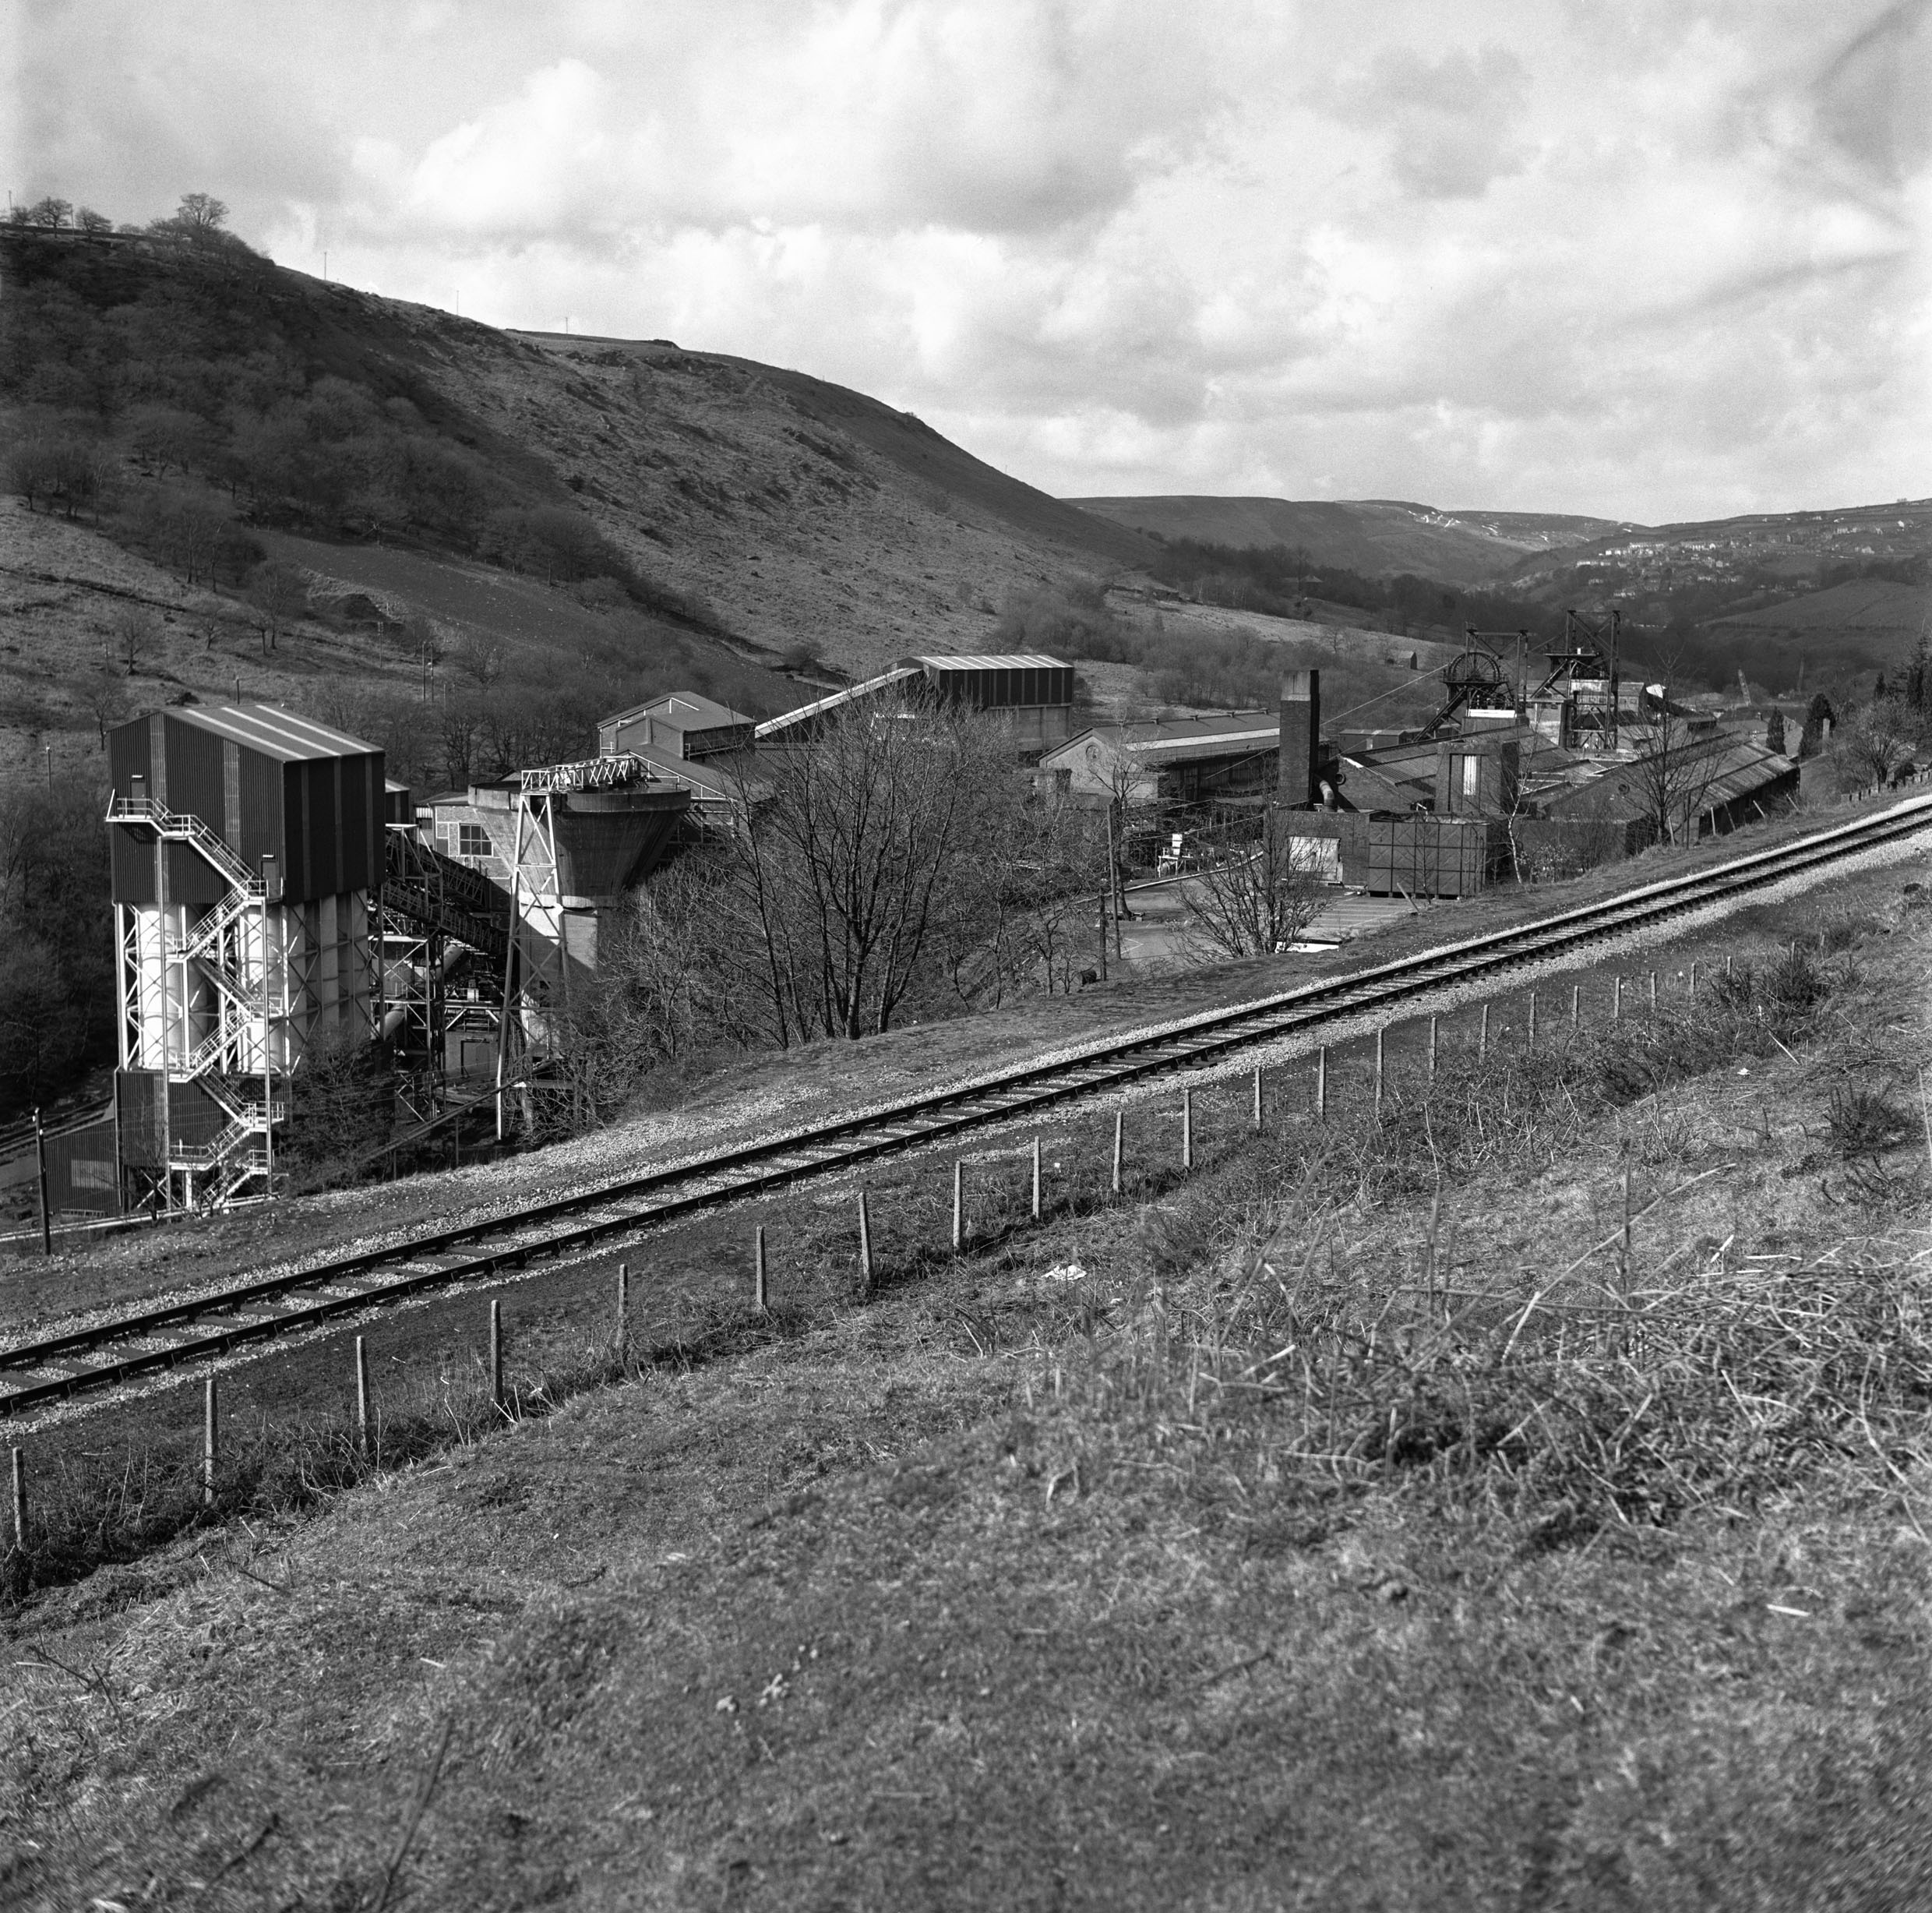 Taff Merthyr Colliery in the late 1970s.